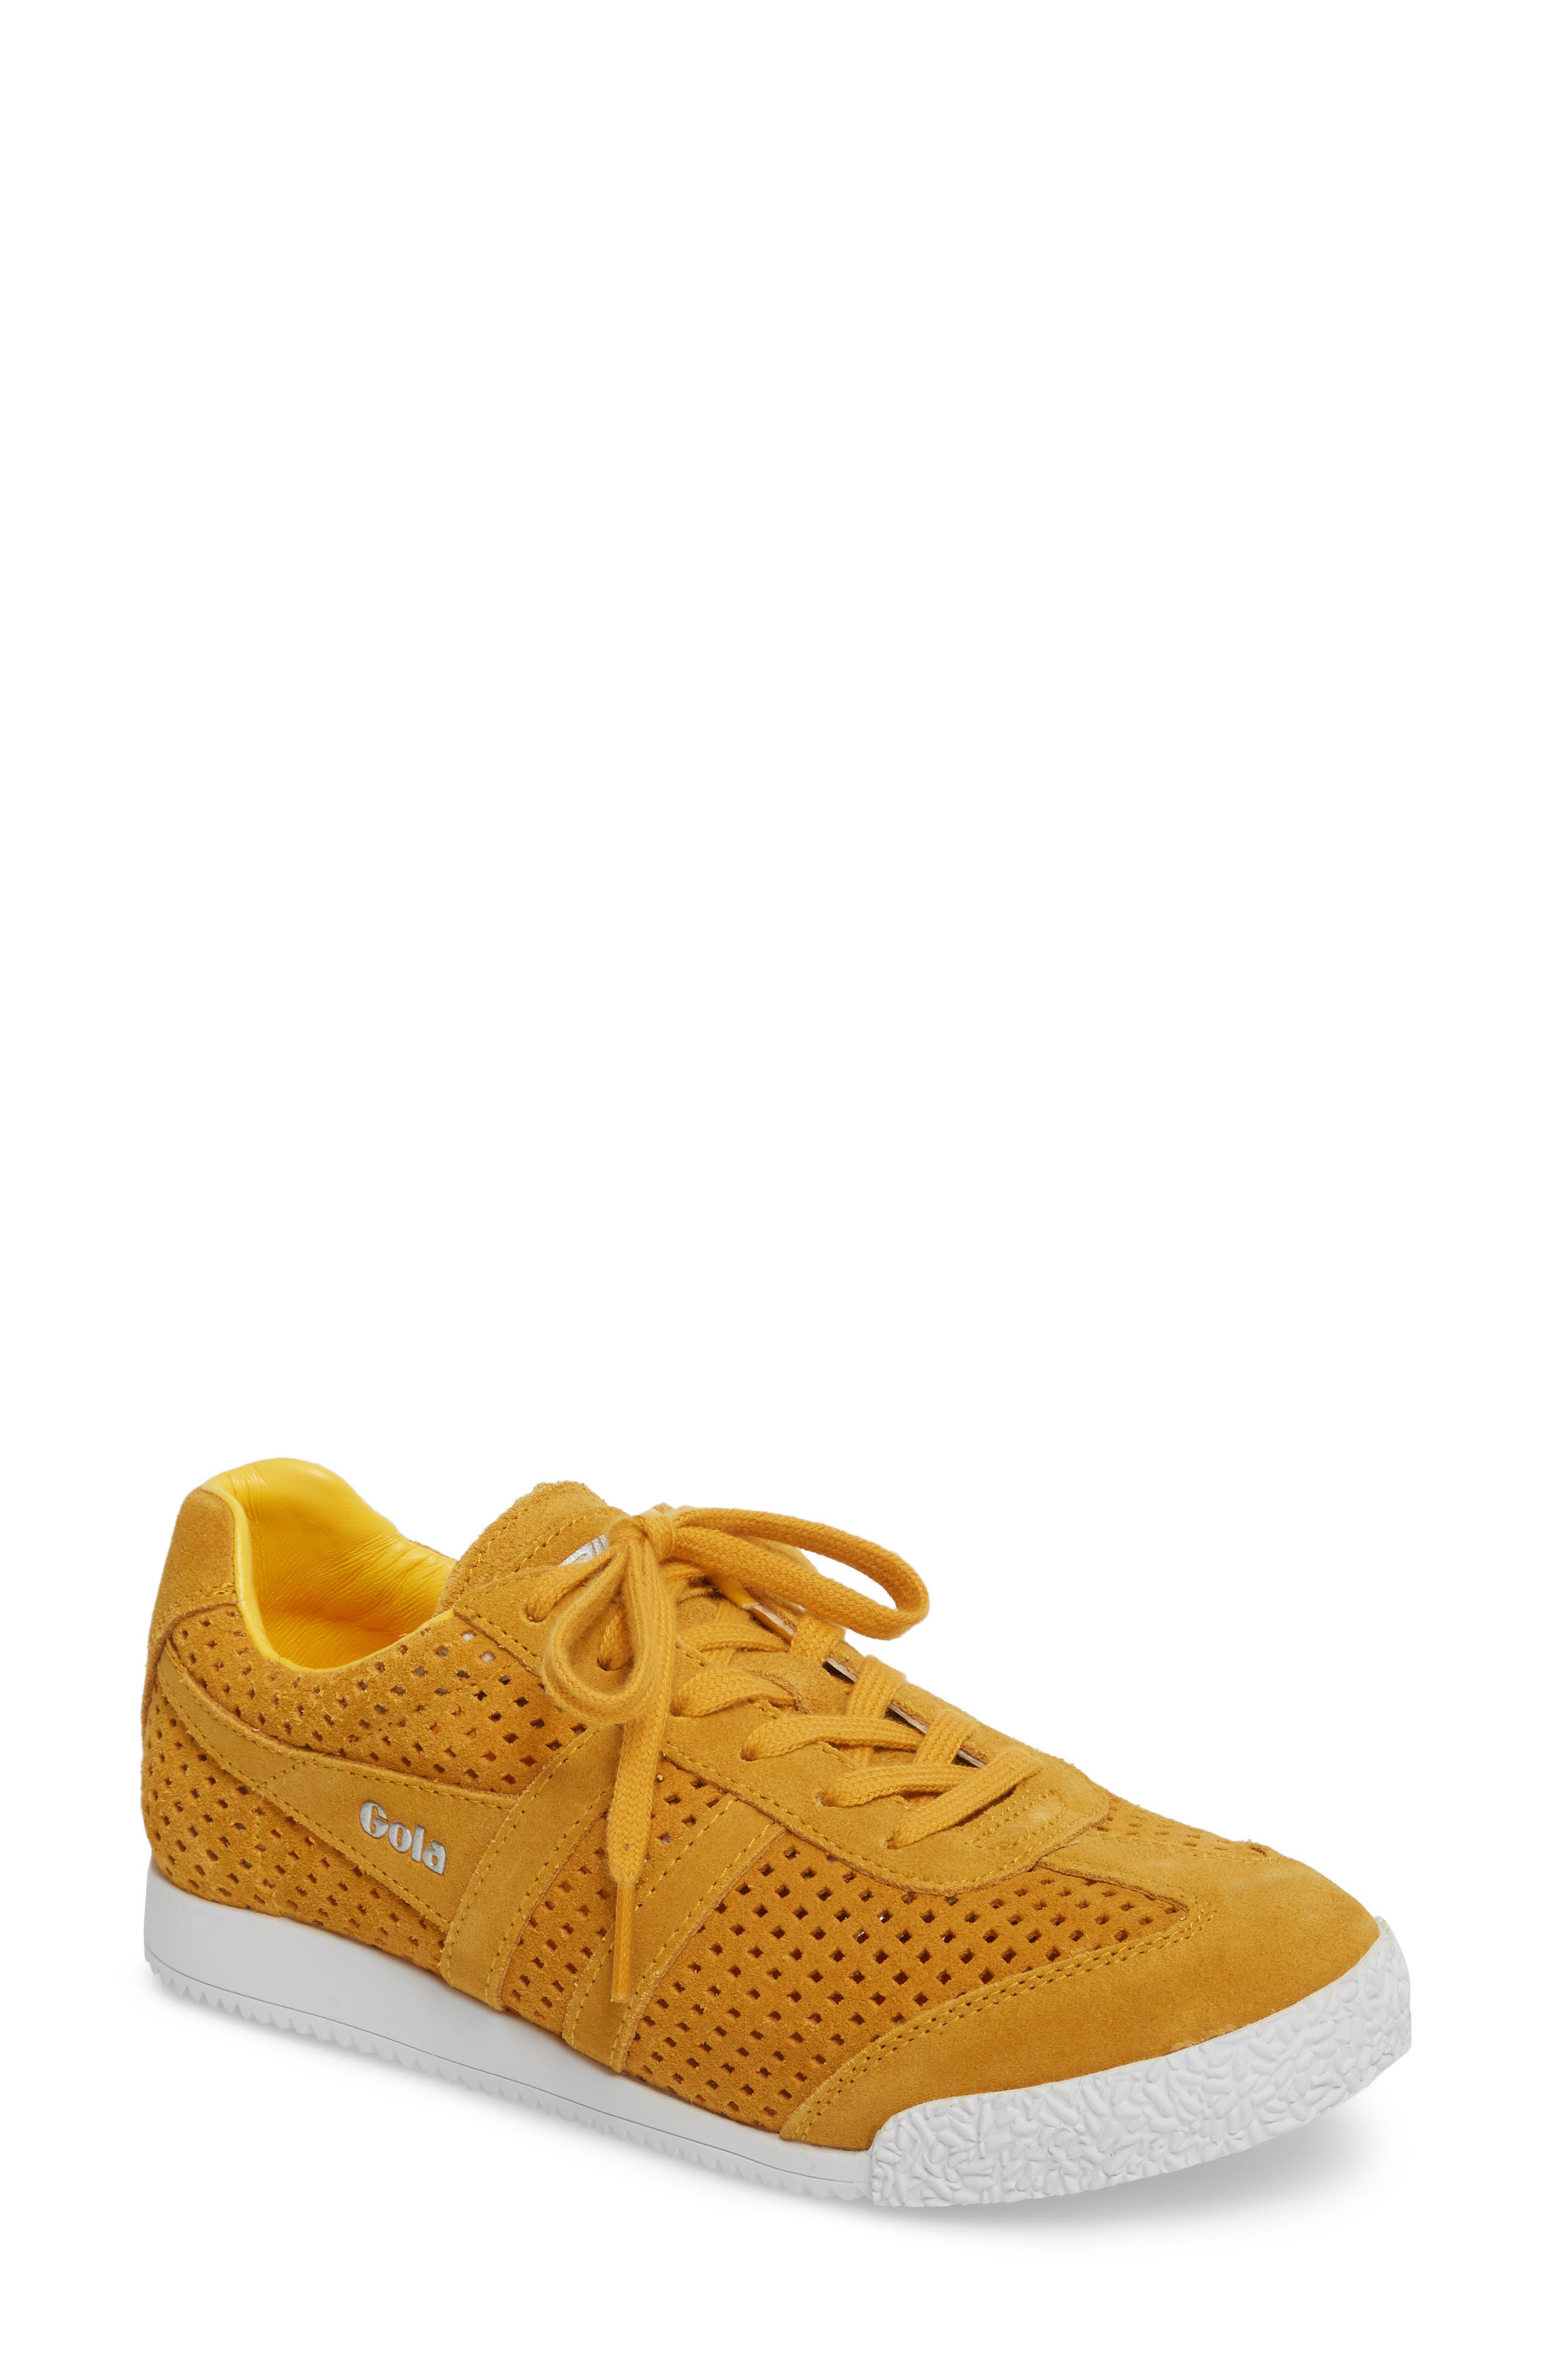 Harrier Squared Low Top Sneaker,                             Main thumbnail 1, color,                             Sun